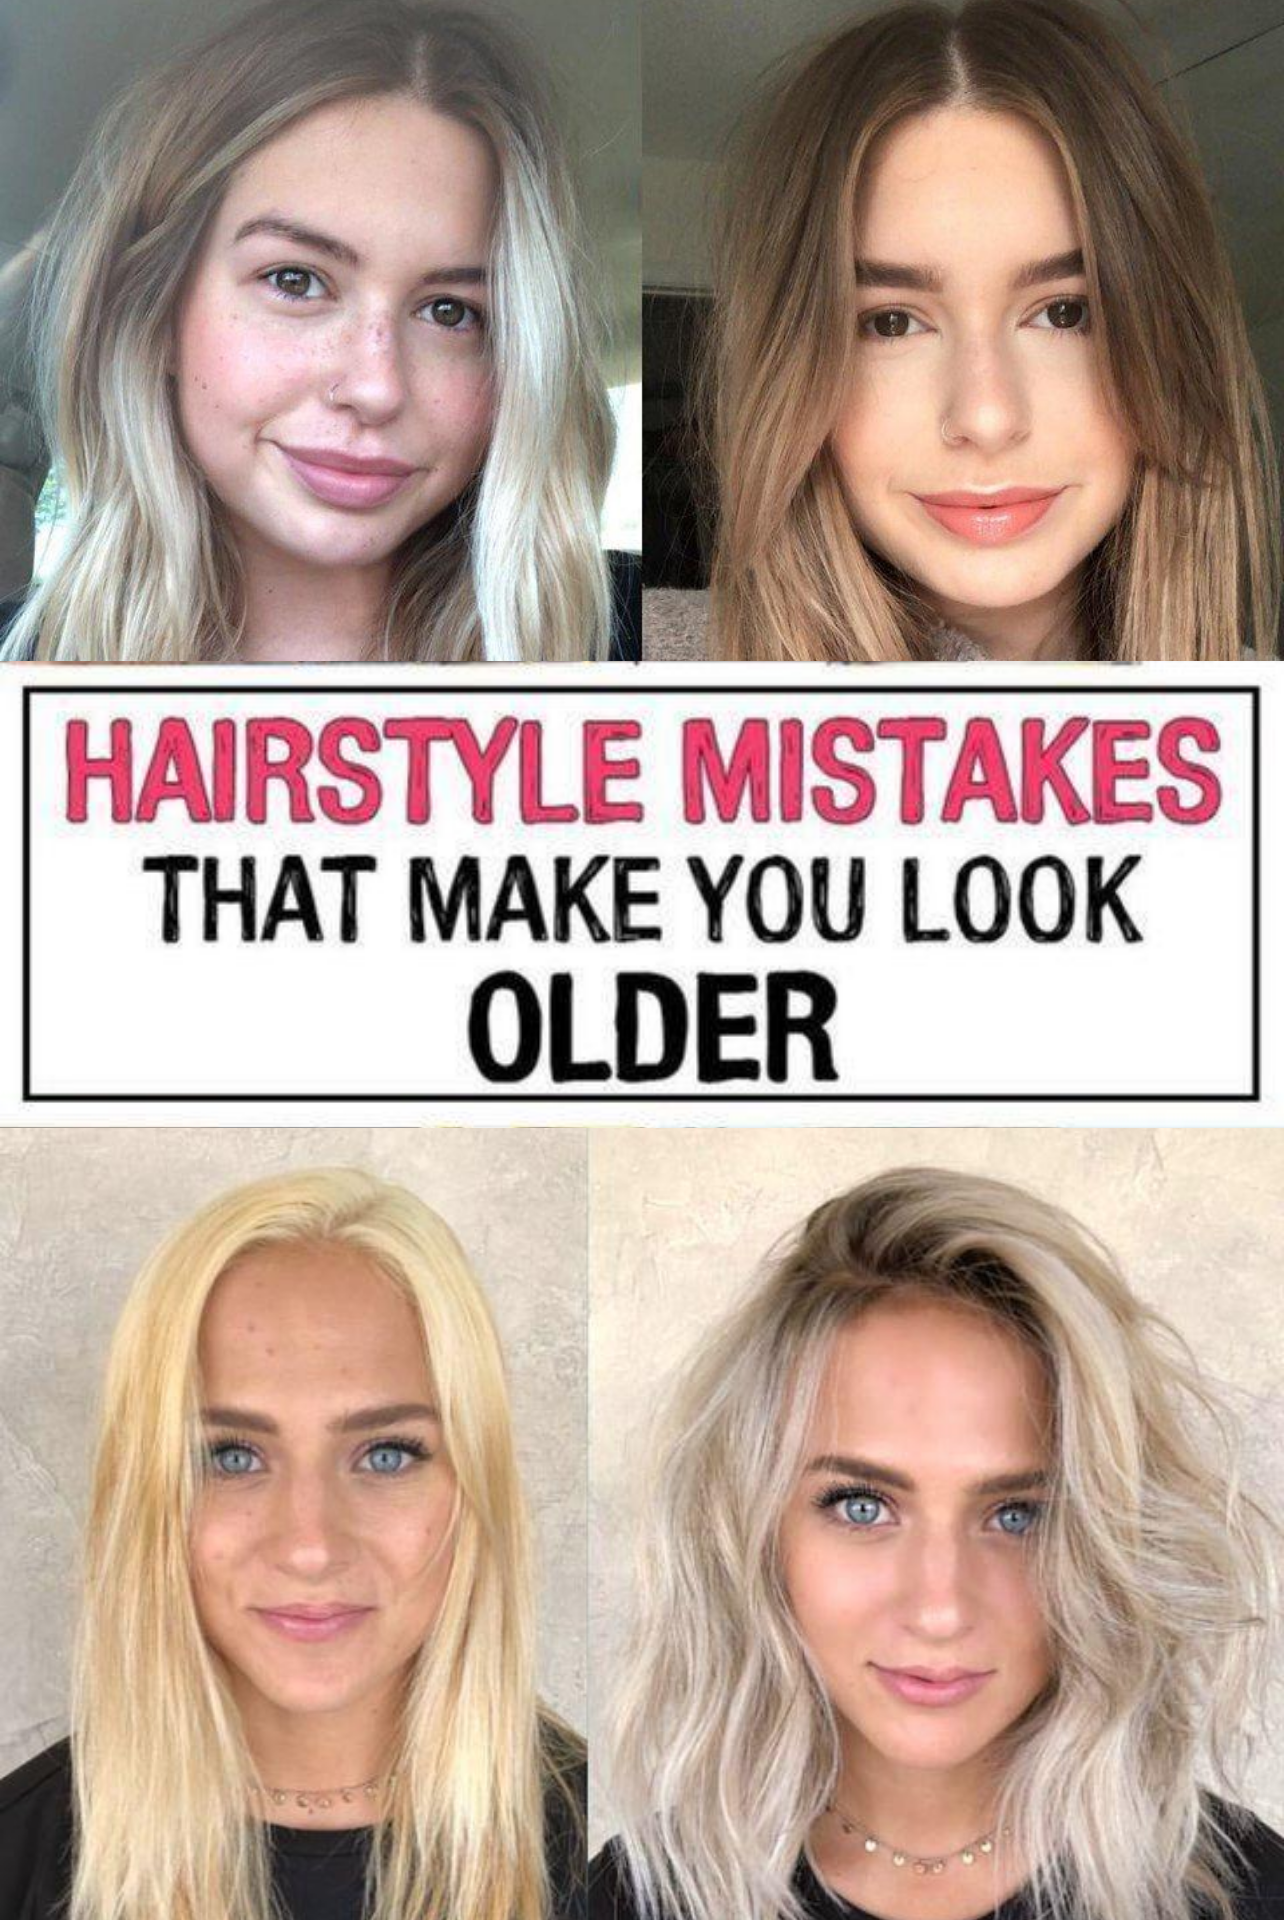 37 Hairstyle Mistakes That Are Aging You In 2020 Hairstyle Hair Advice Mom Hairstyles